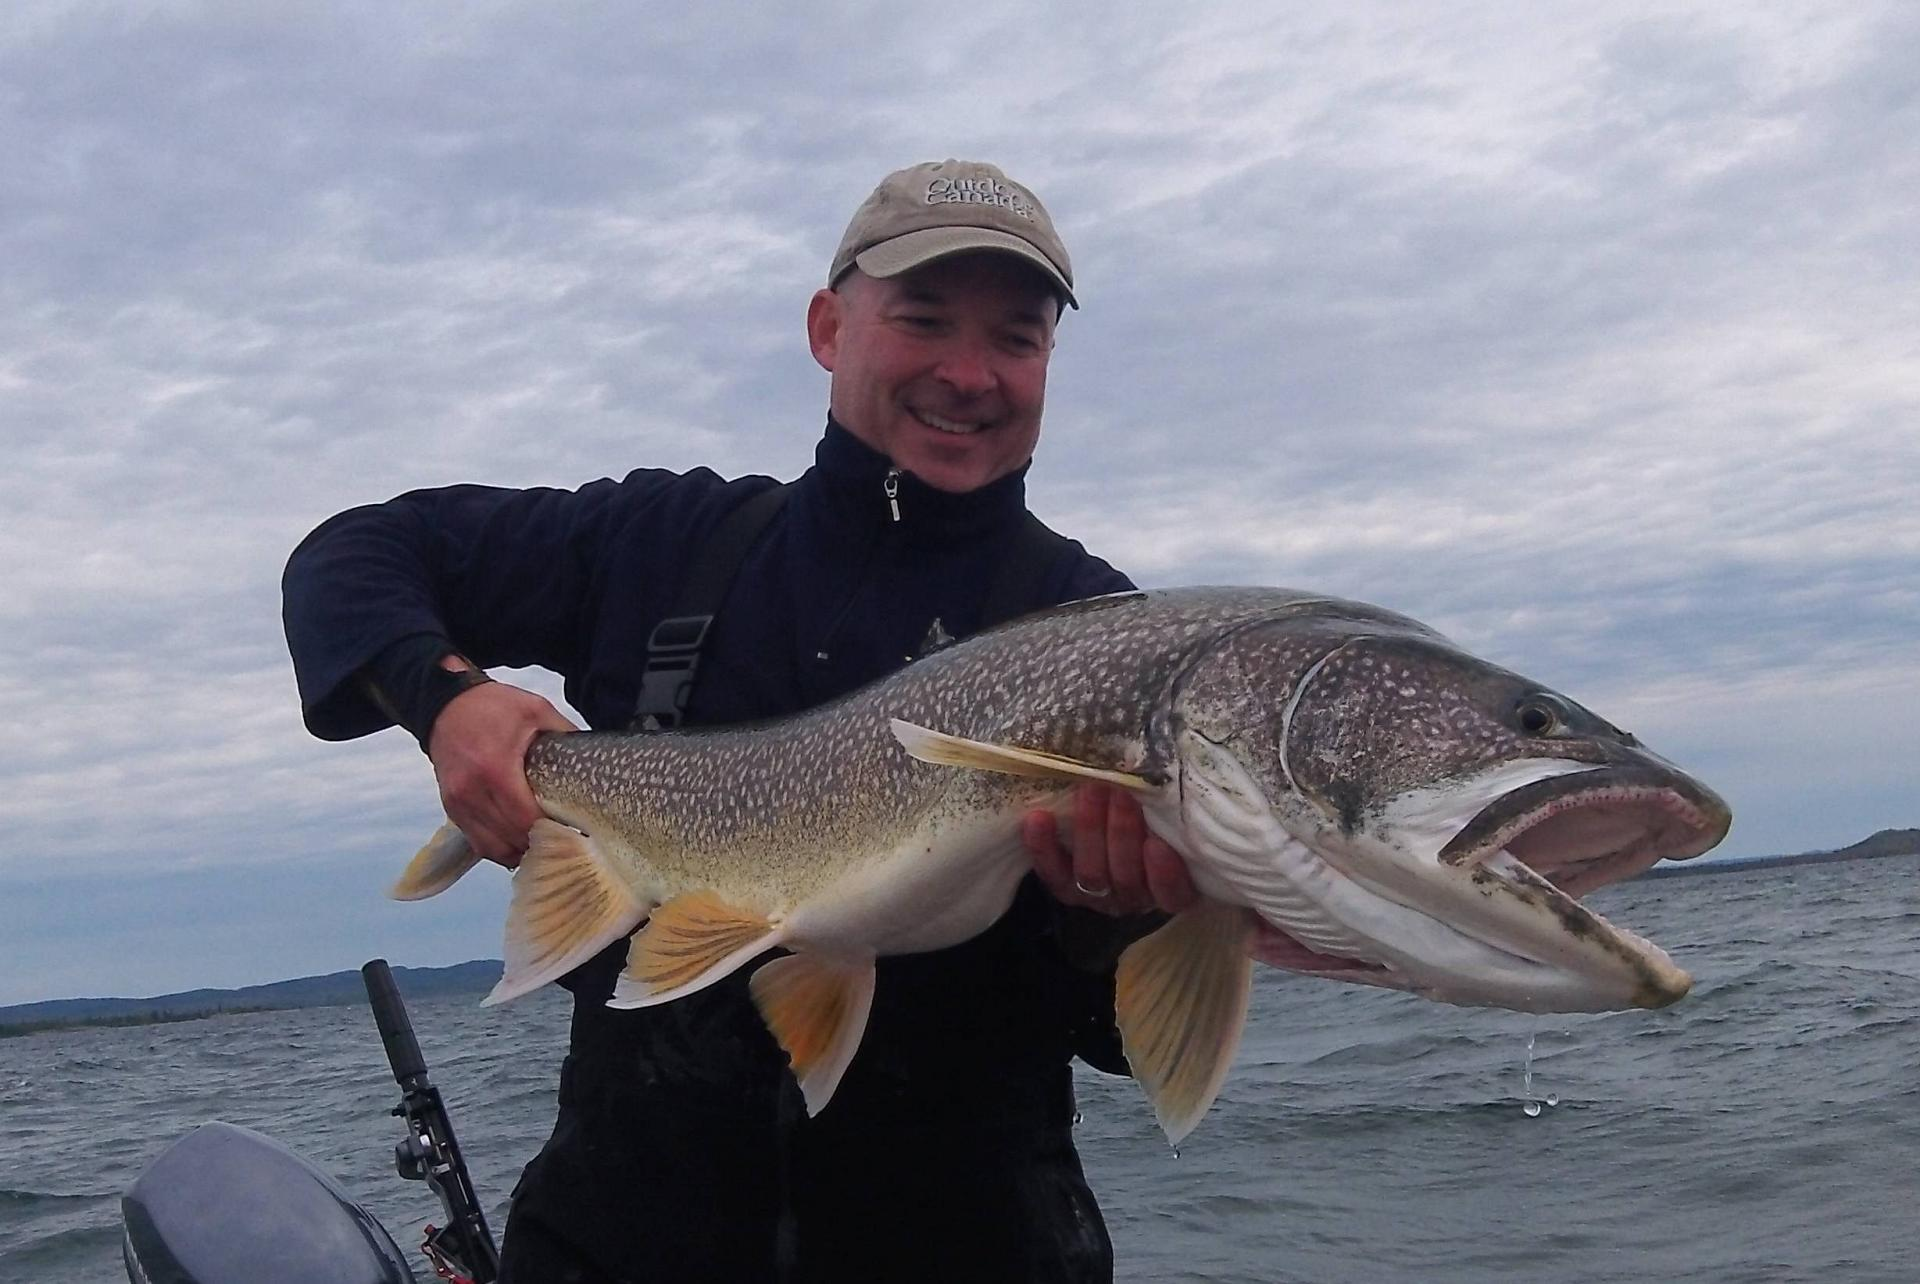 Big fish: My personal best for the day, a 41-inch laker on the fly